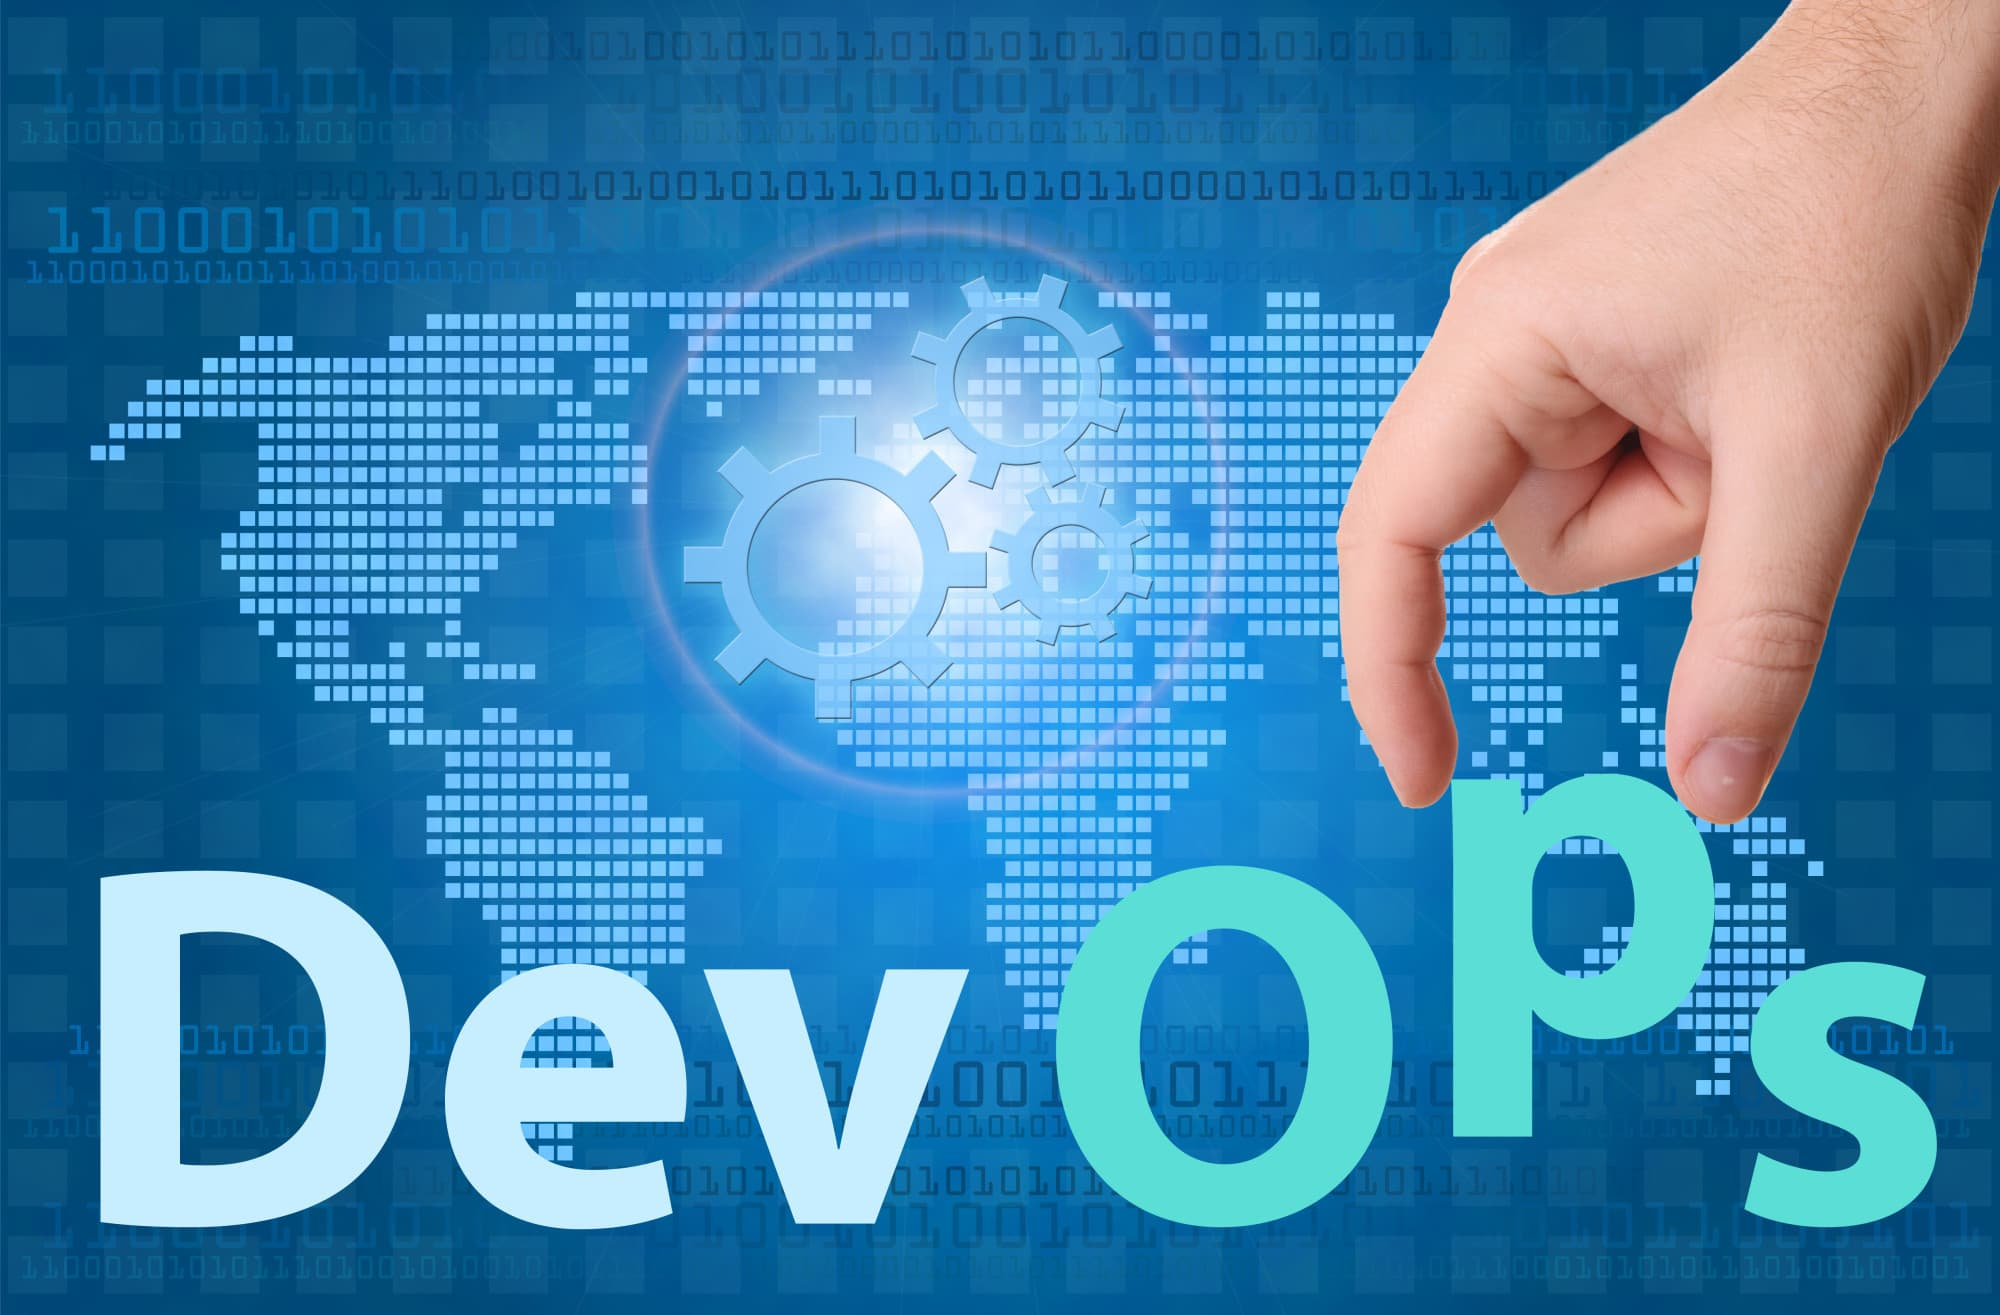 SAFe Devops: The Great Opportunities of Integrating Devops and Agile